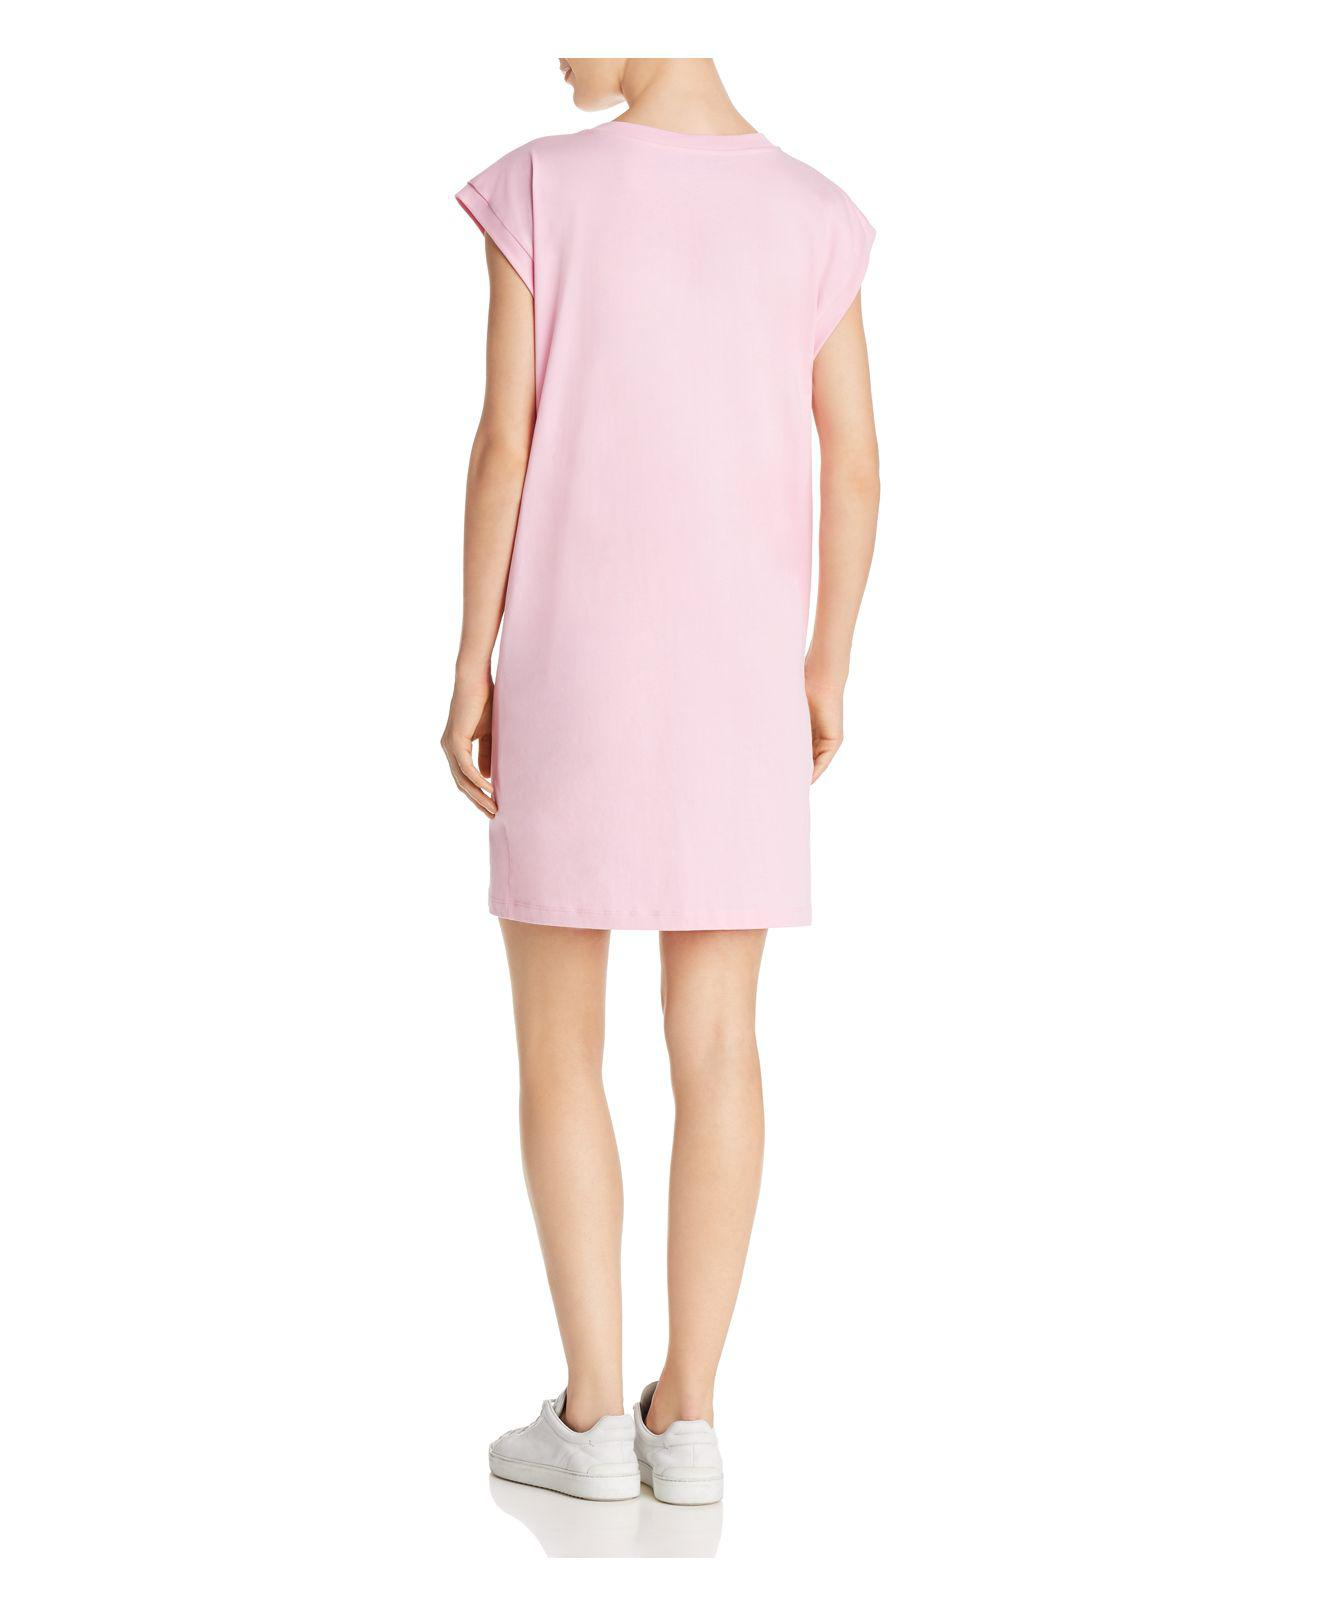 Dress with pierced details on the neckline MOSCHINO BOUTIQUE I7QYC2T